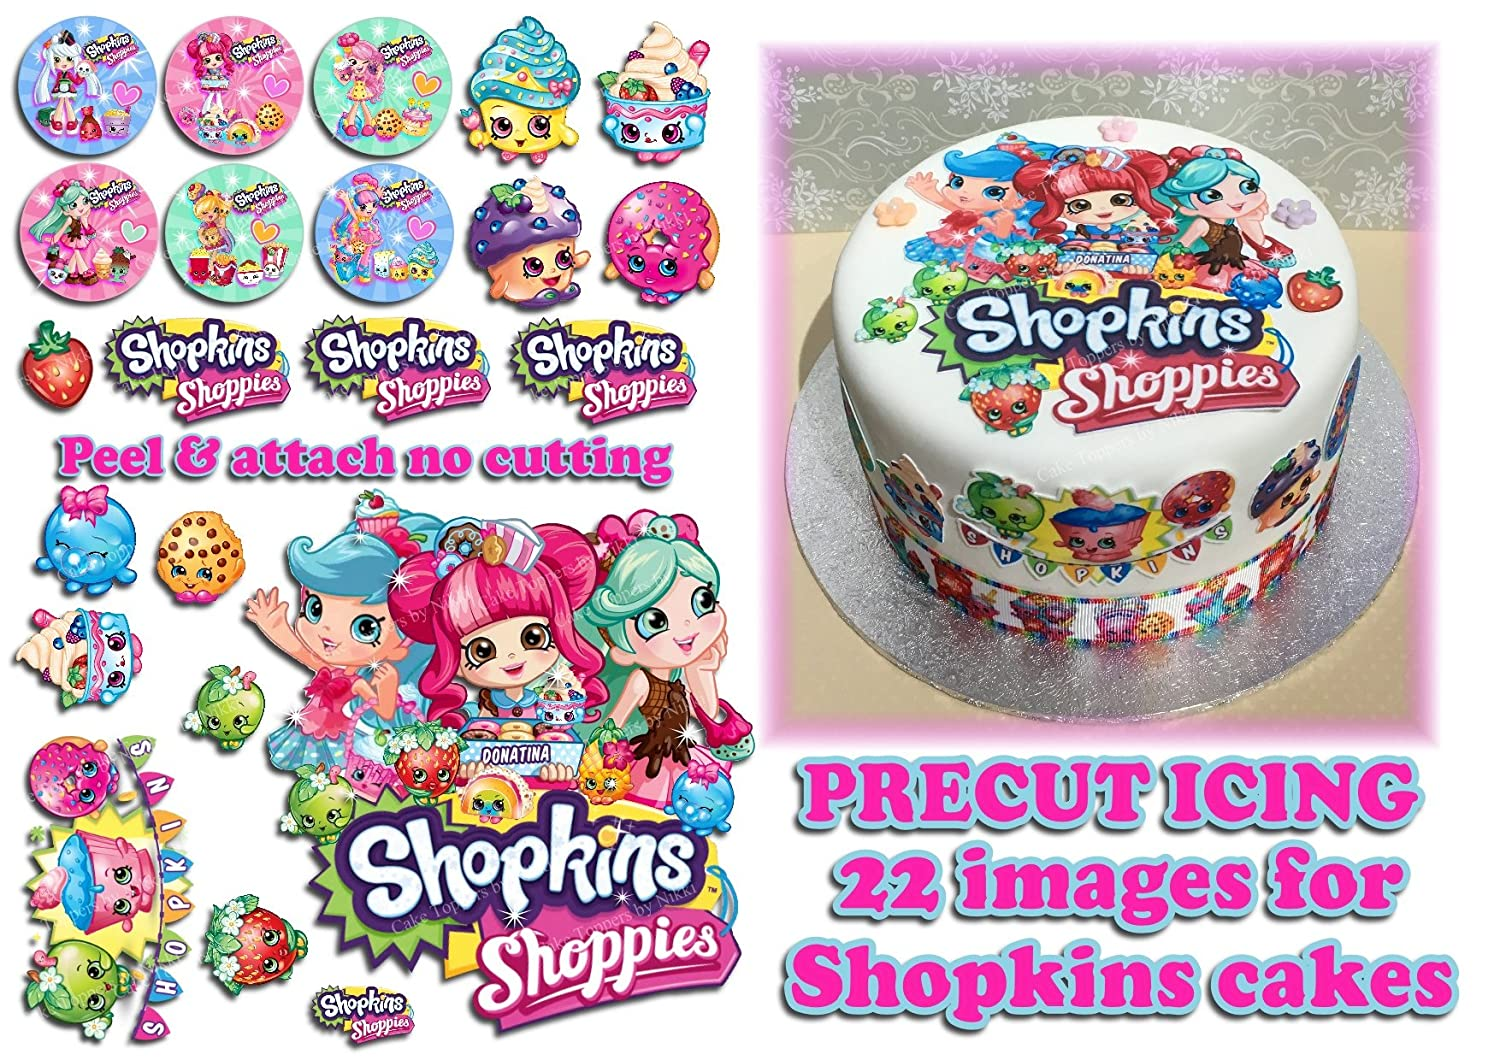 Precut Edible Icing SHOPKINS SHOPPIES Icing Cake Toppers 22